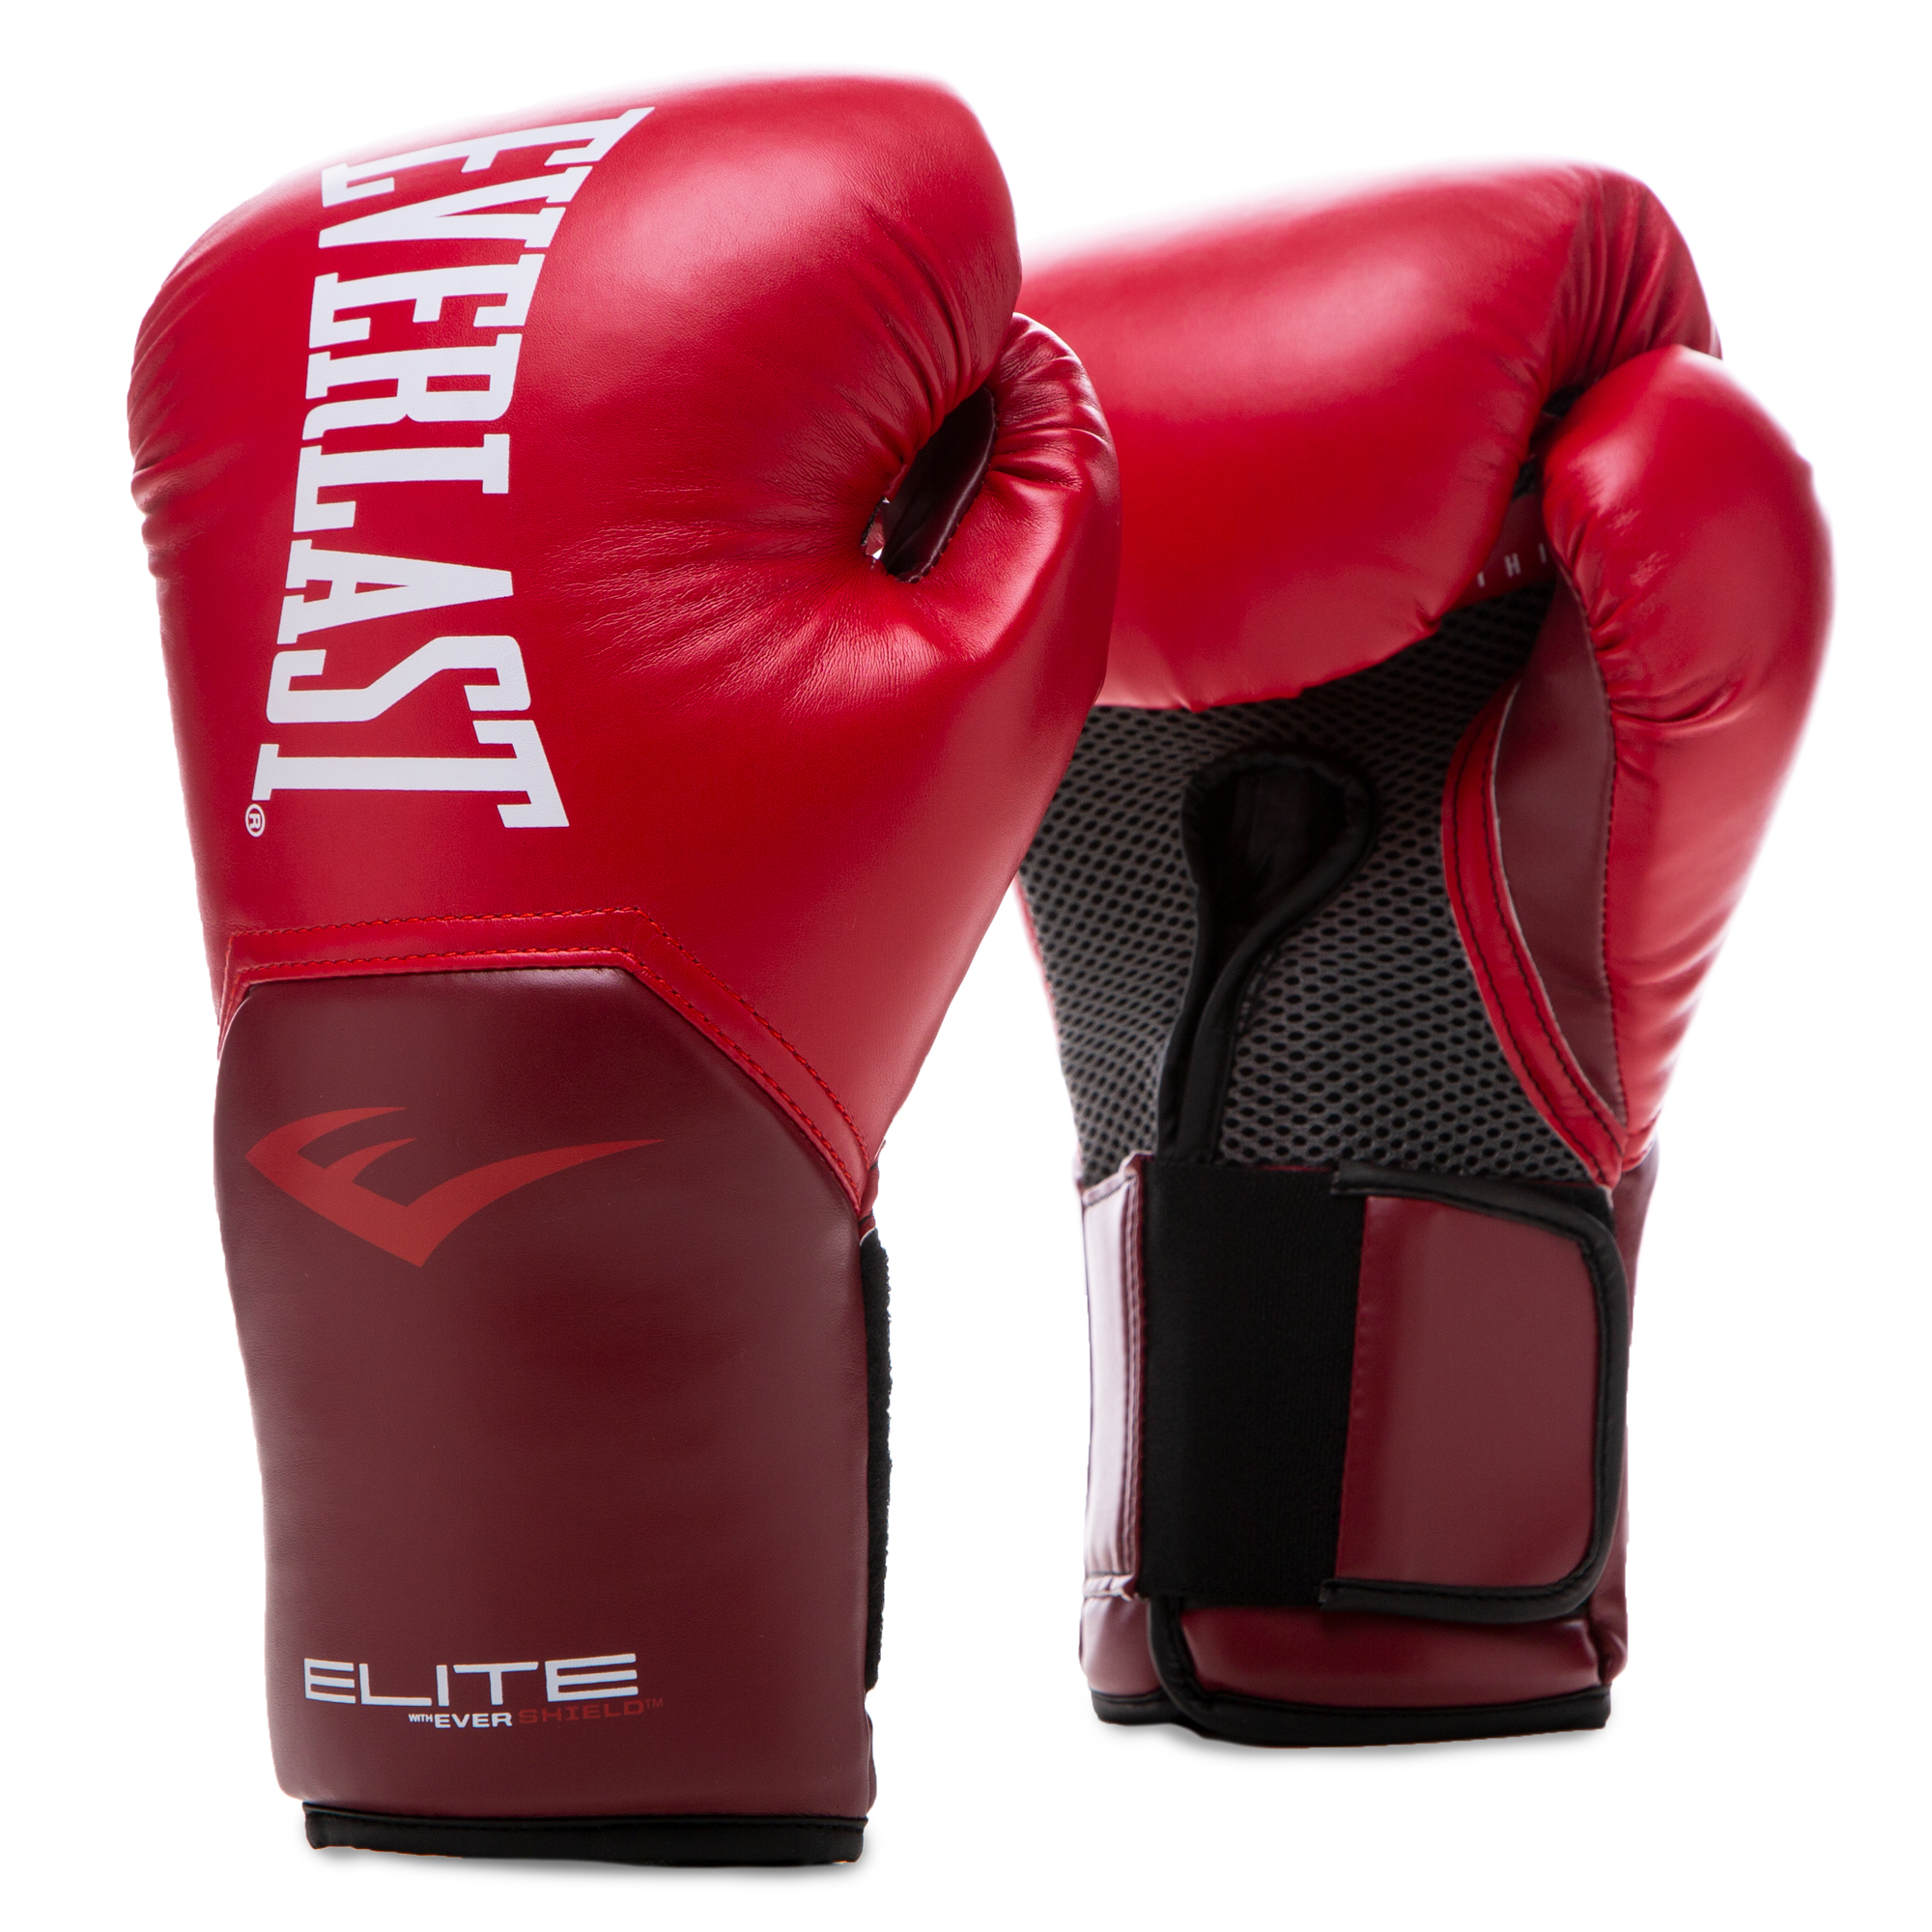 Gants de boxe Everlast pro style elite training rouge